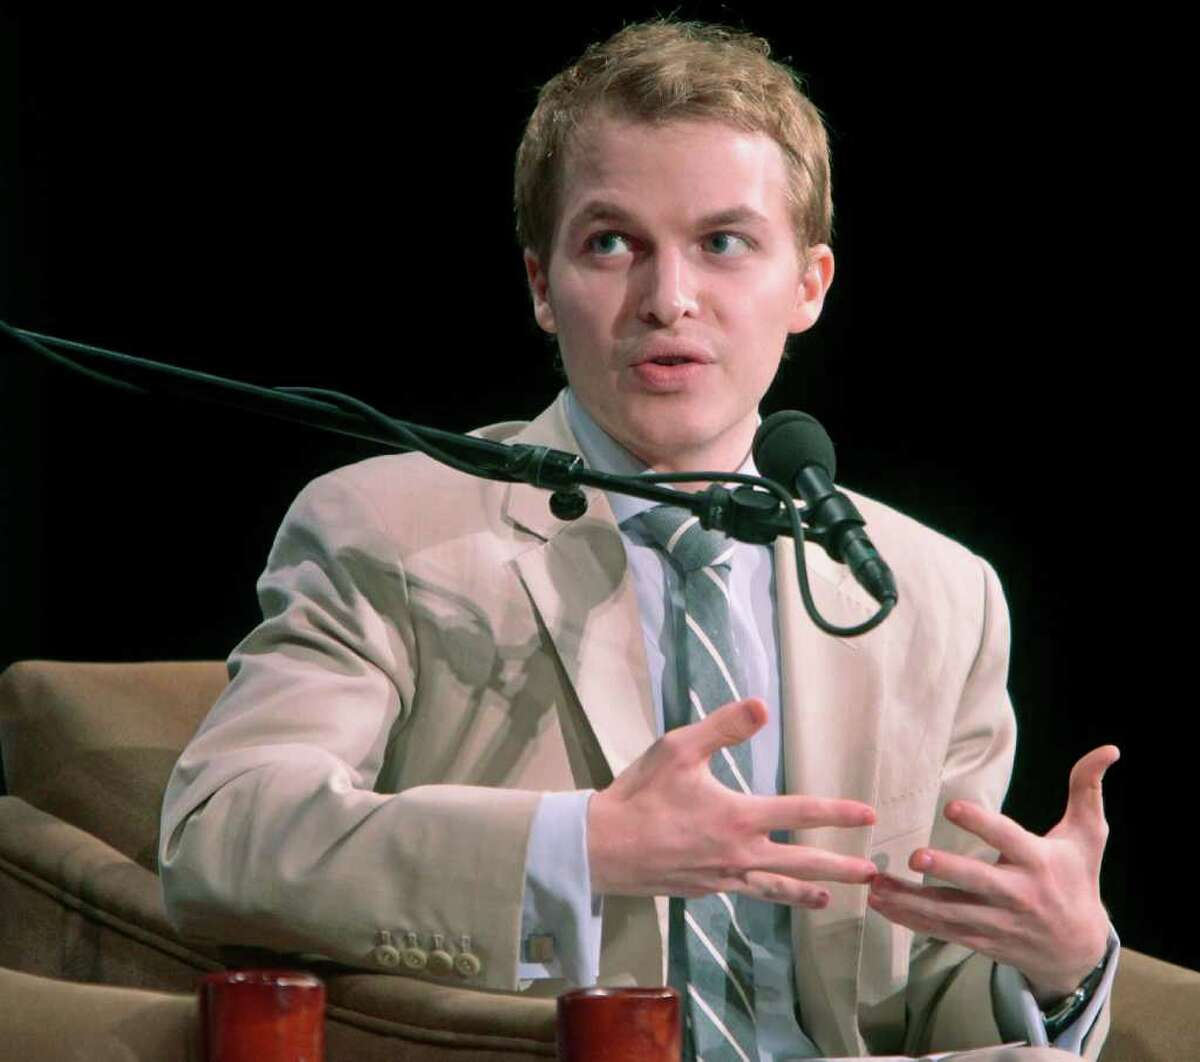 Ronan Farrow, the 23-year-old son of Mia Farrow and Woody Allen, was also named a Rhodes scholar.